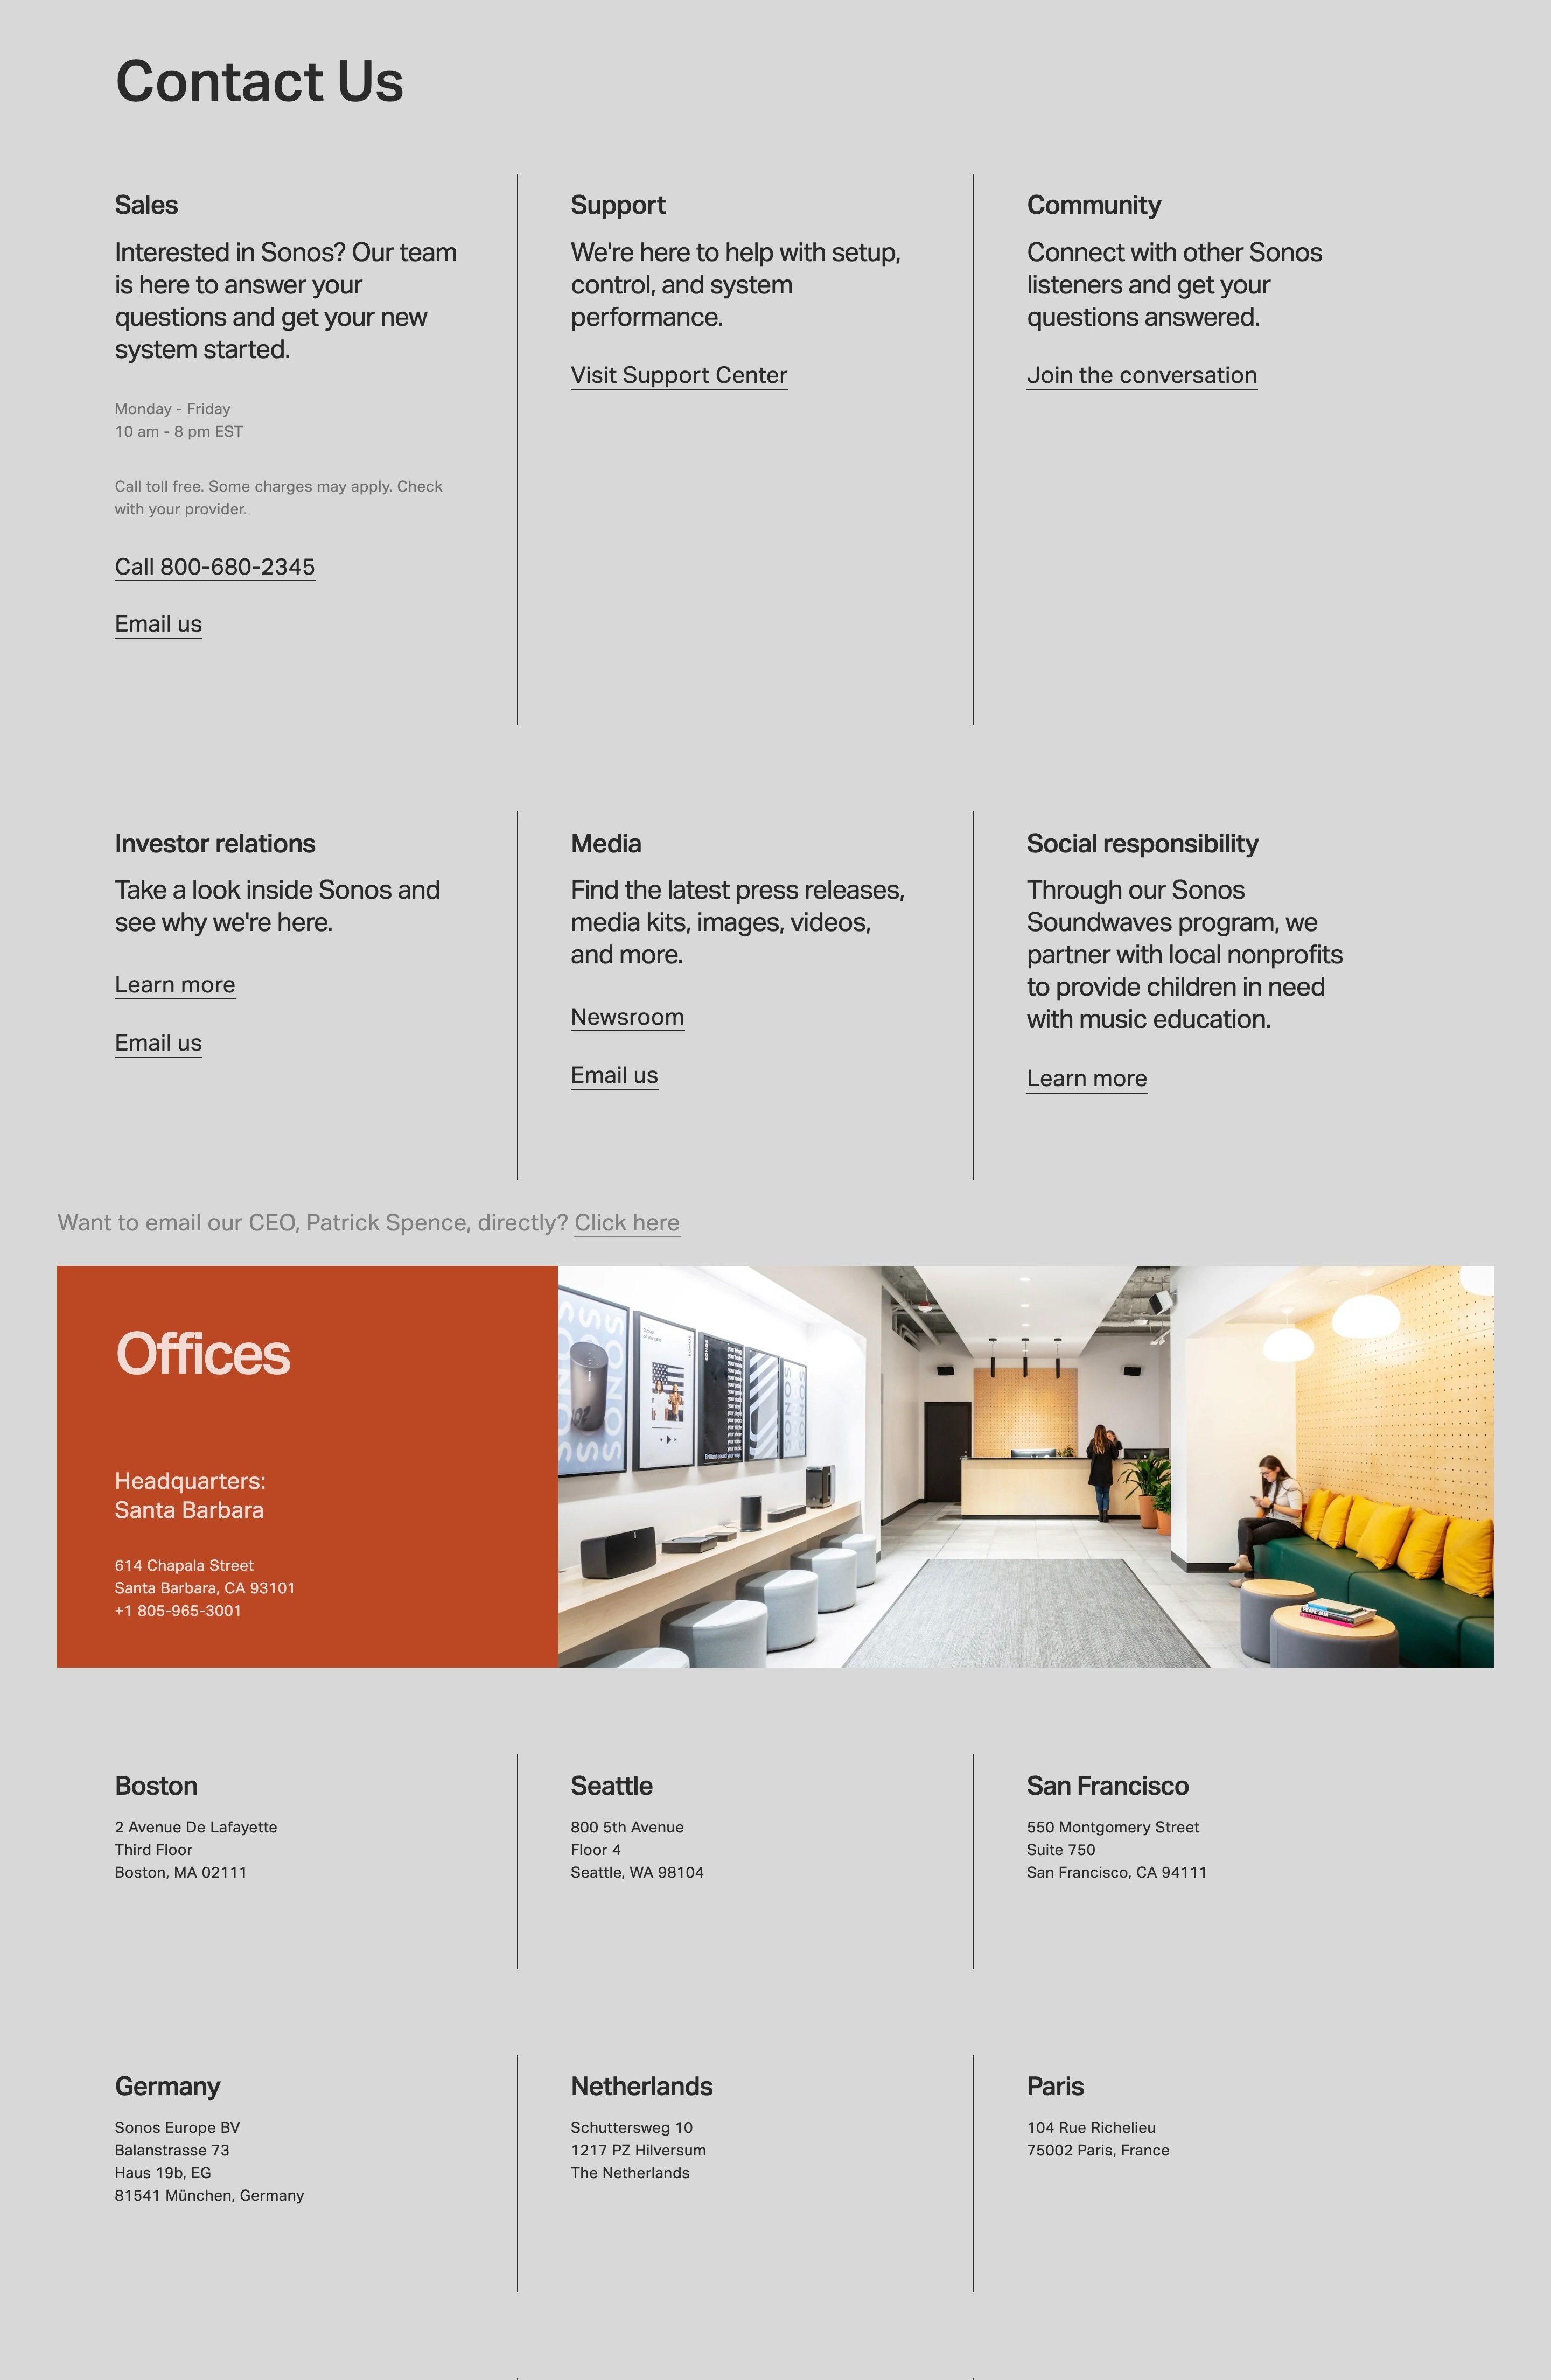 Contact Info with Offices List